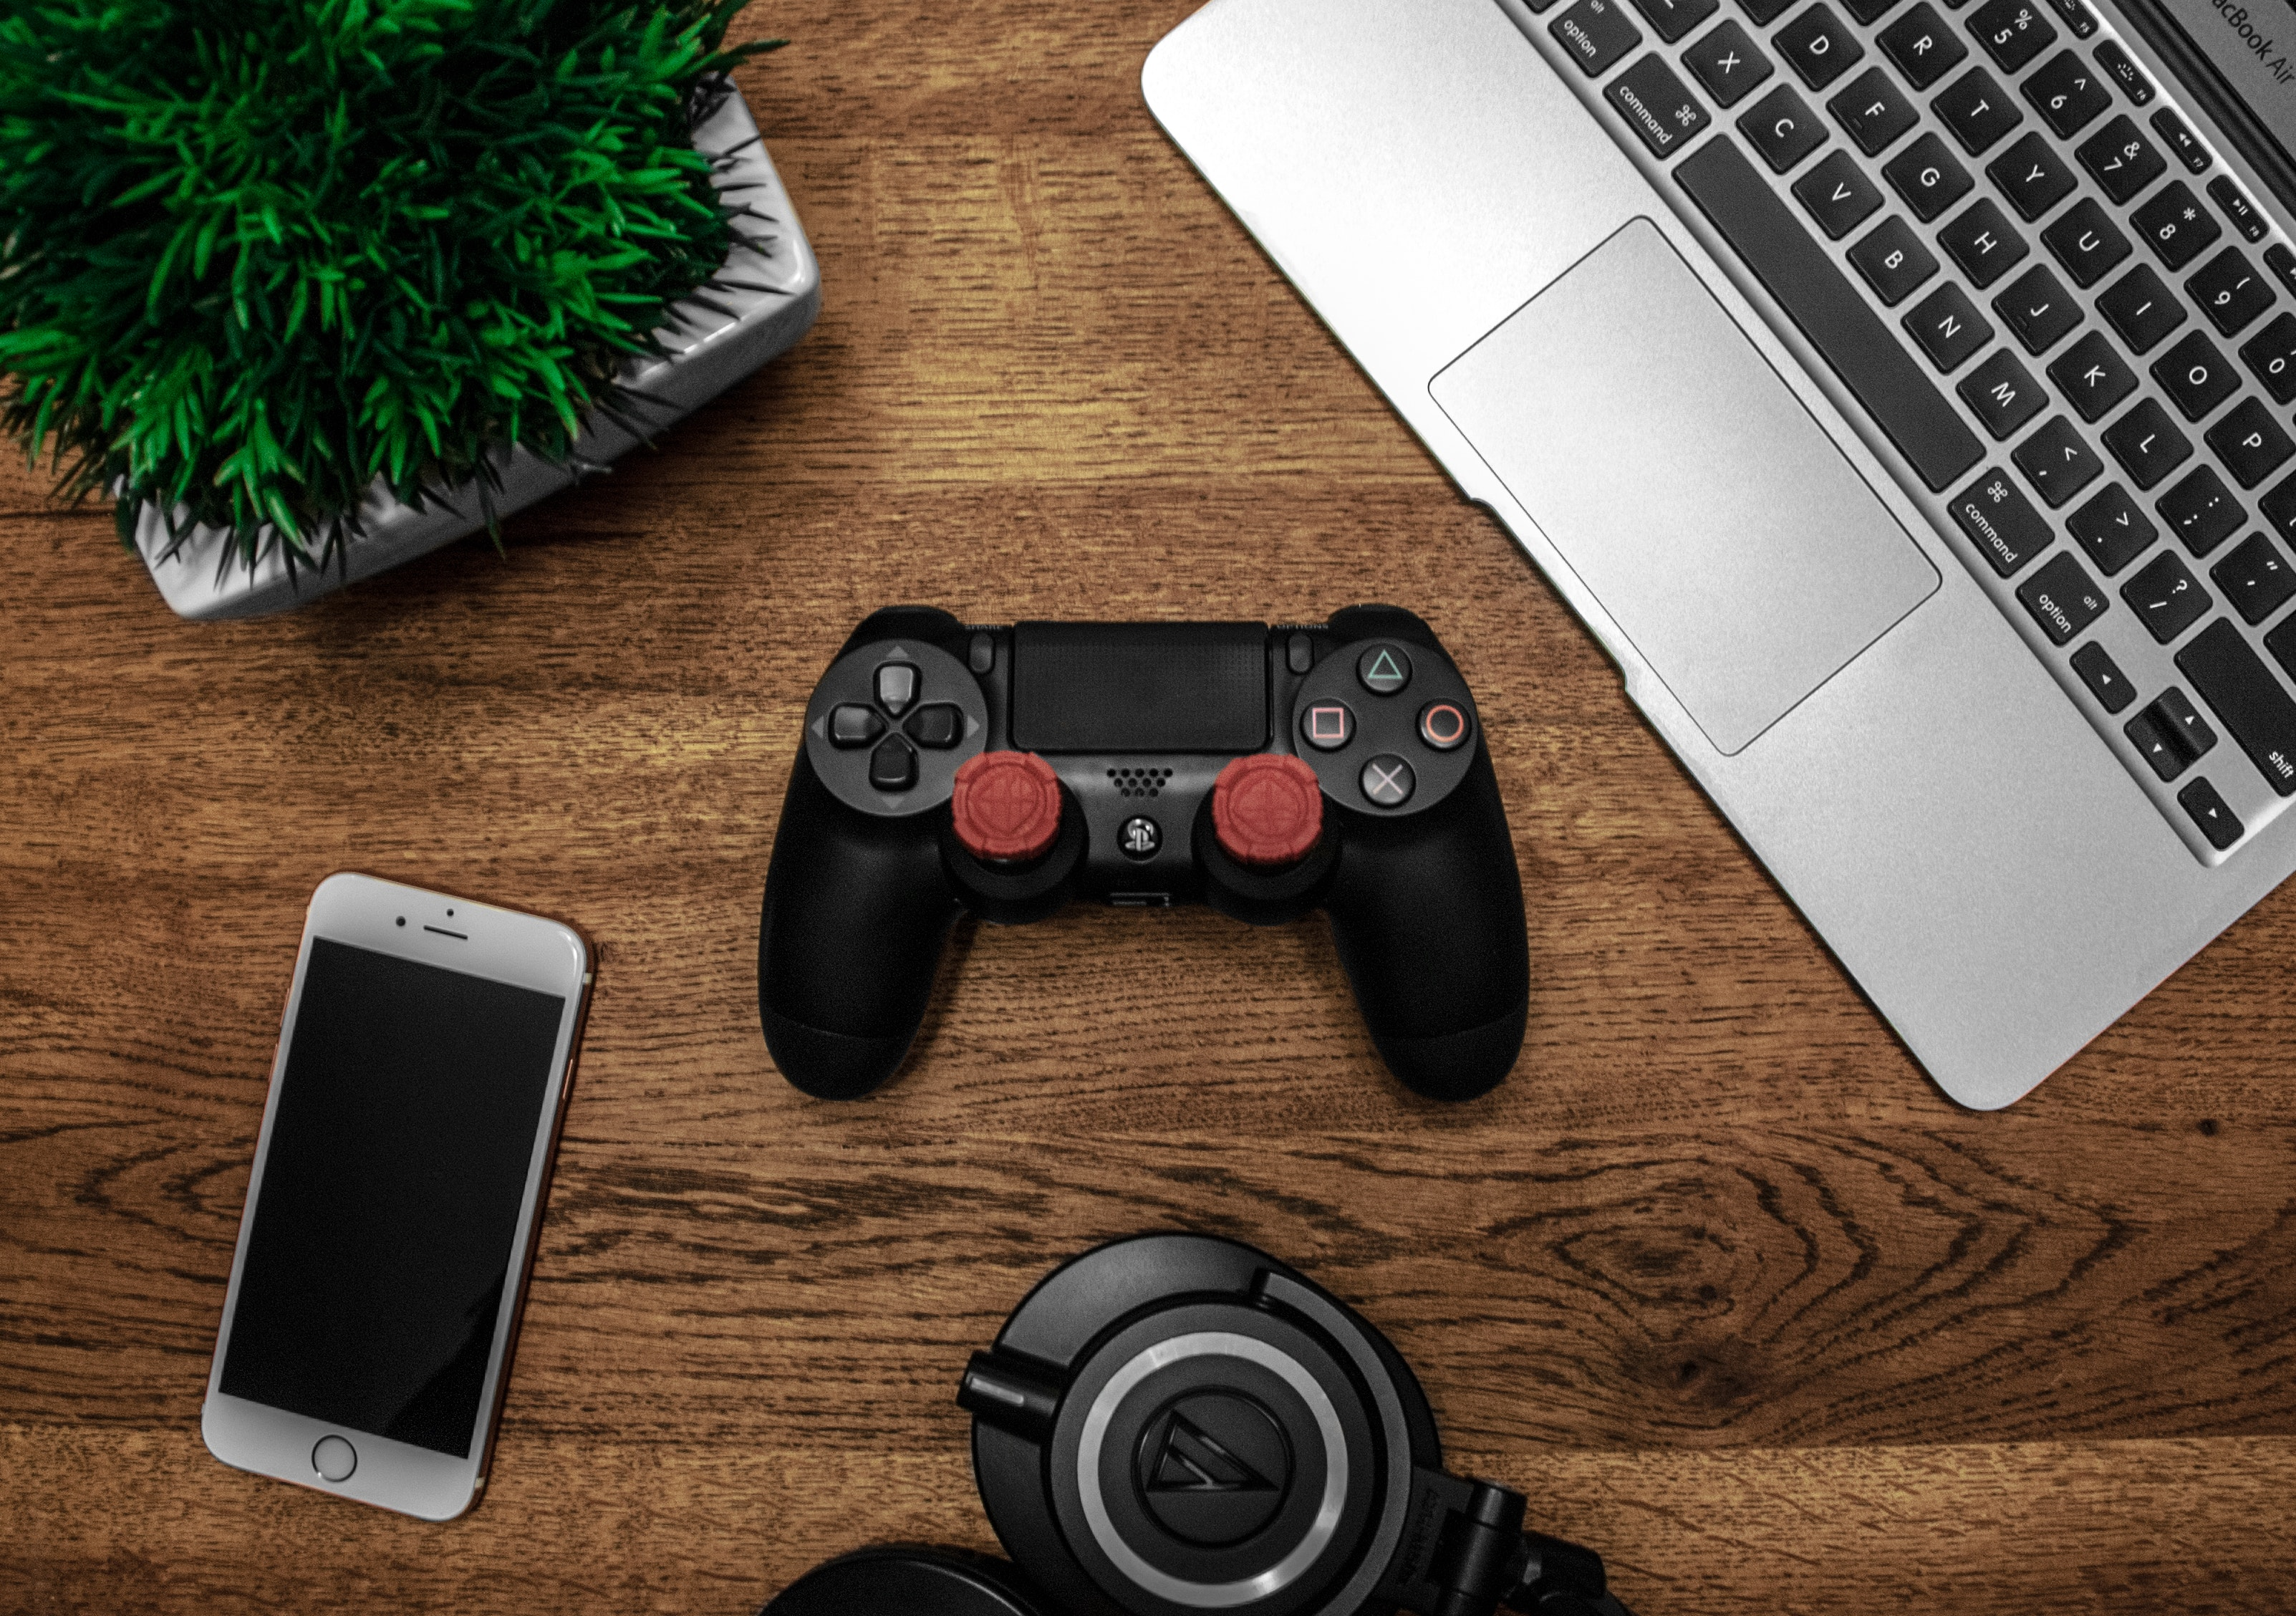 Silver Macbook Beside Black Sony Ps4 Dualshock 4, Silver Iphone 6, and Round Black Keychain on Brown Wooden Table, Portable, Macbook, Mobile phone, Modern, HQ Photo